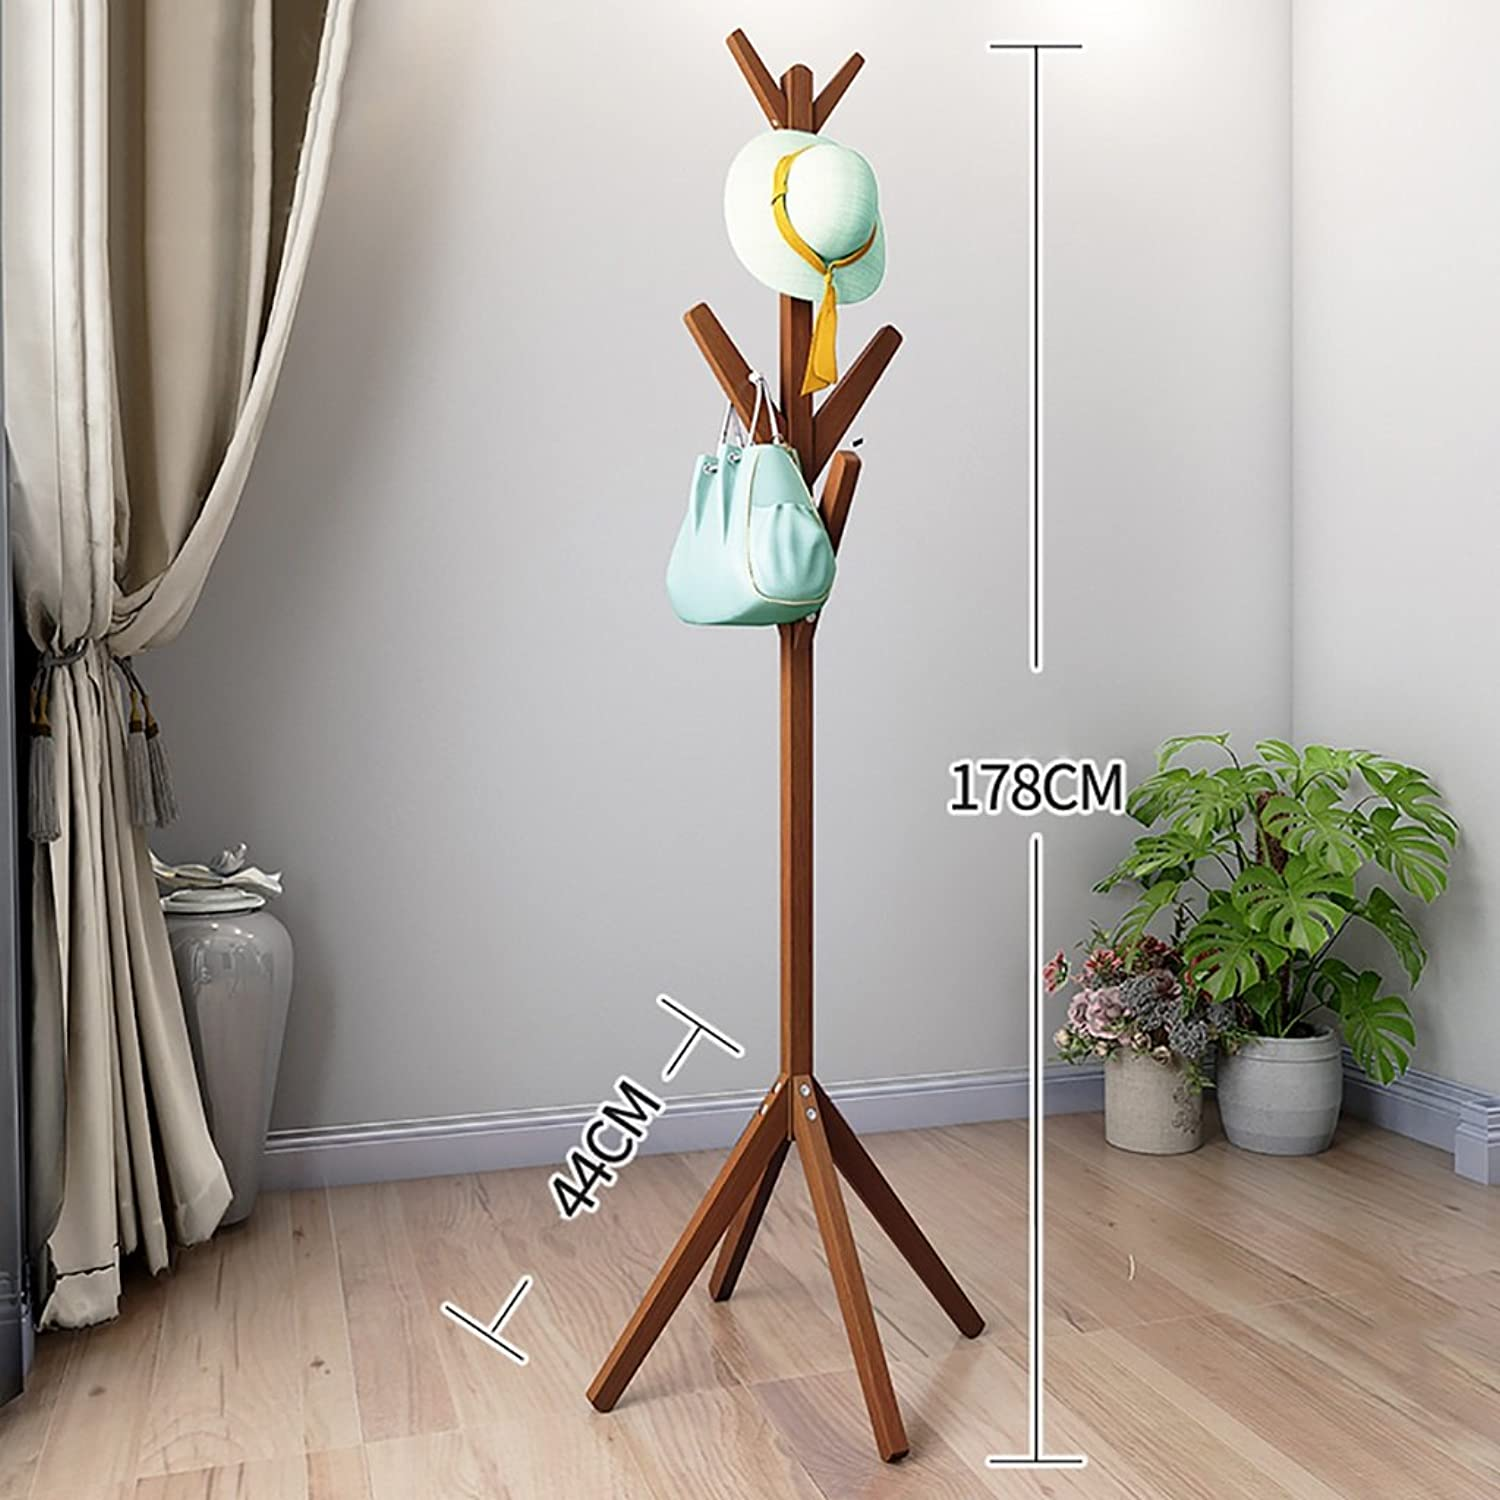 JPYMJ Coat Rack Floor Hangers Bedroom Solid Wood Hangers Living Room Clothes Hanger (color   C)